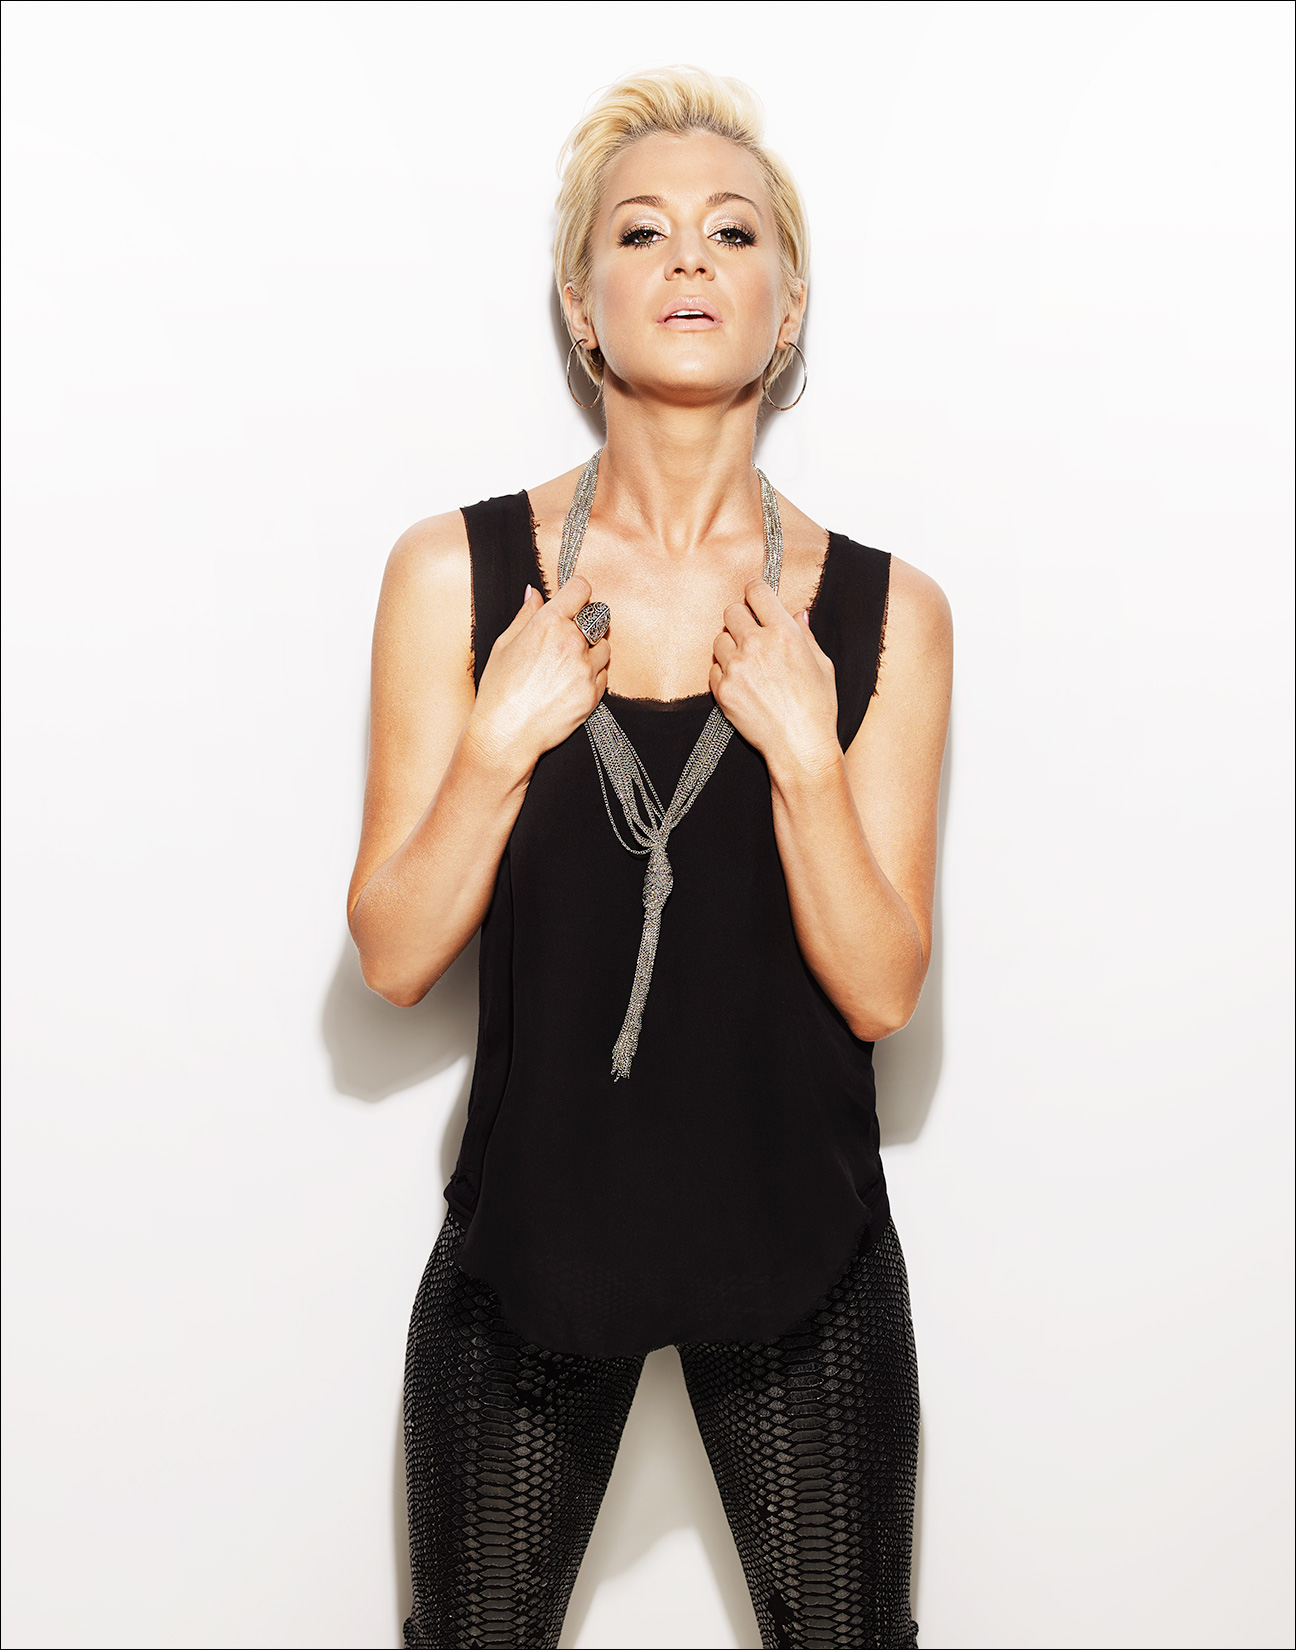 Kellie-Pickler-by-Robert-Ascroft.jpg